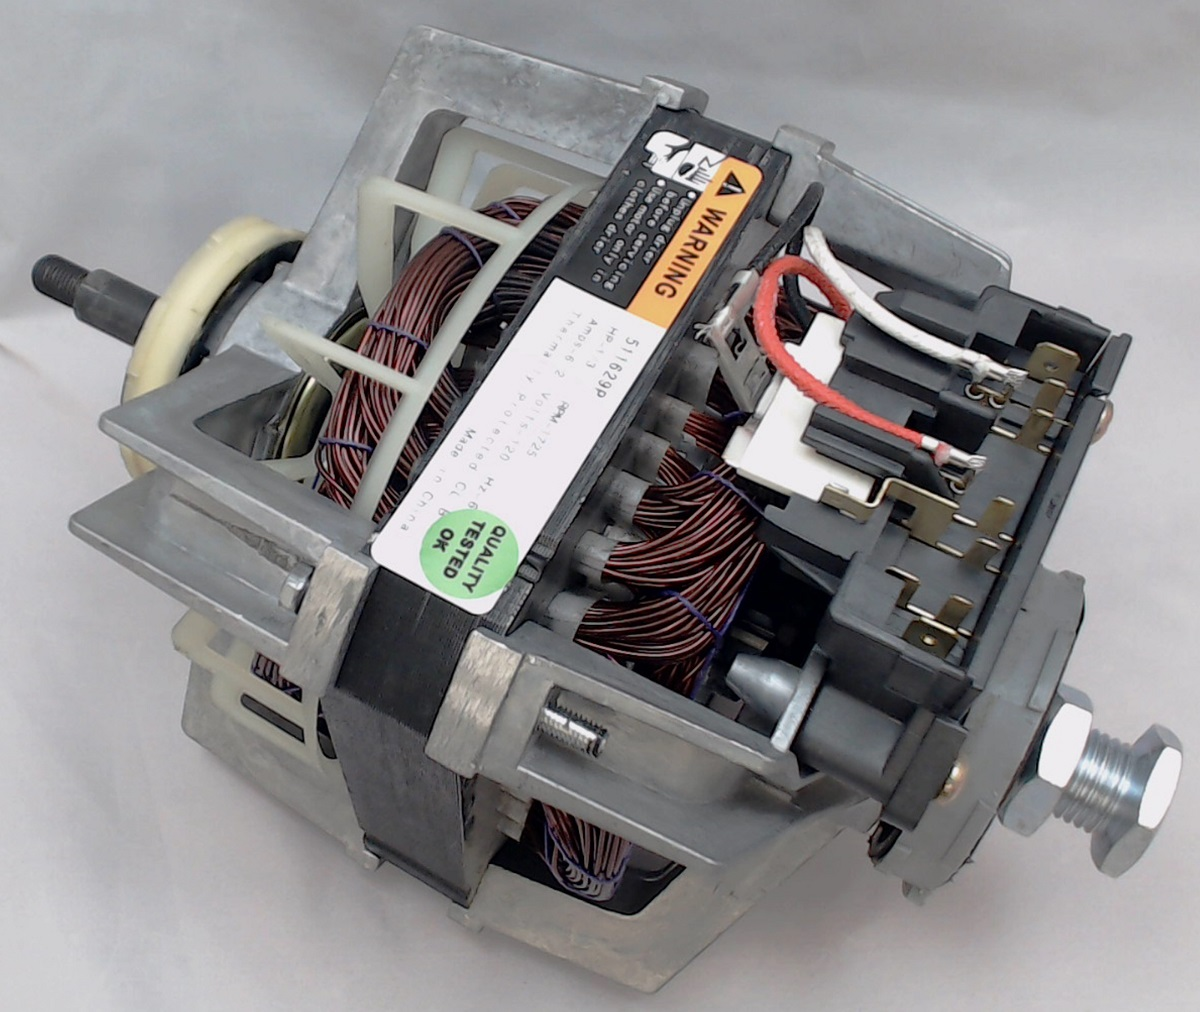 2200376 Dryer Motor For Maytag Whirlpool